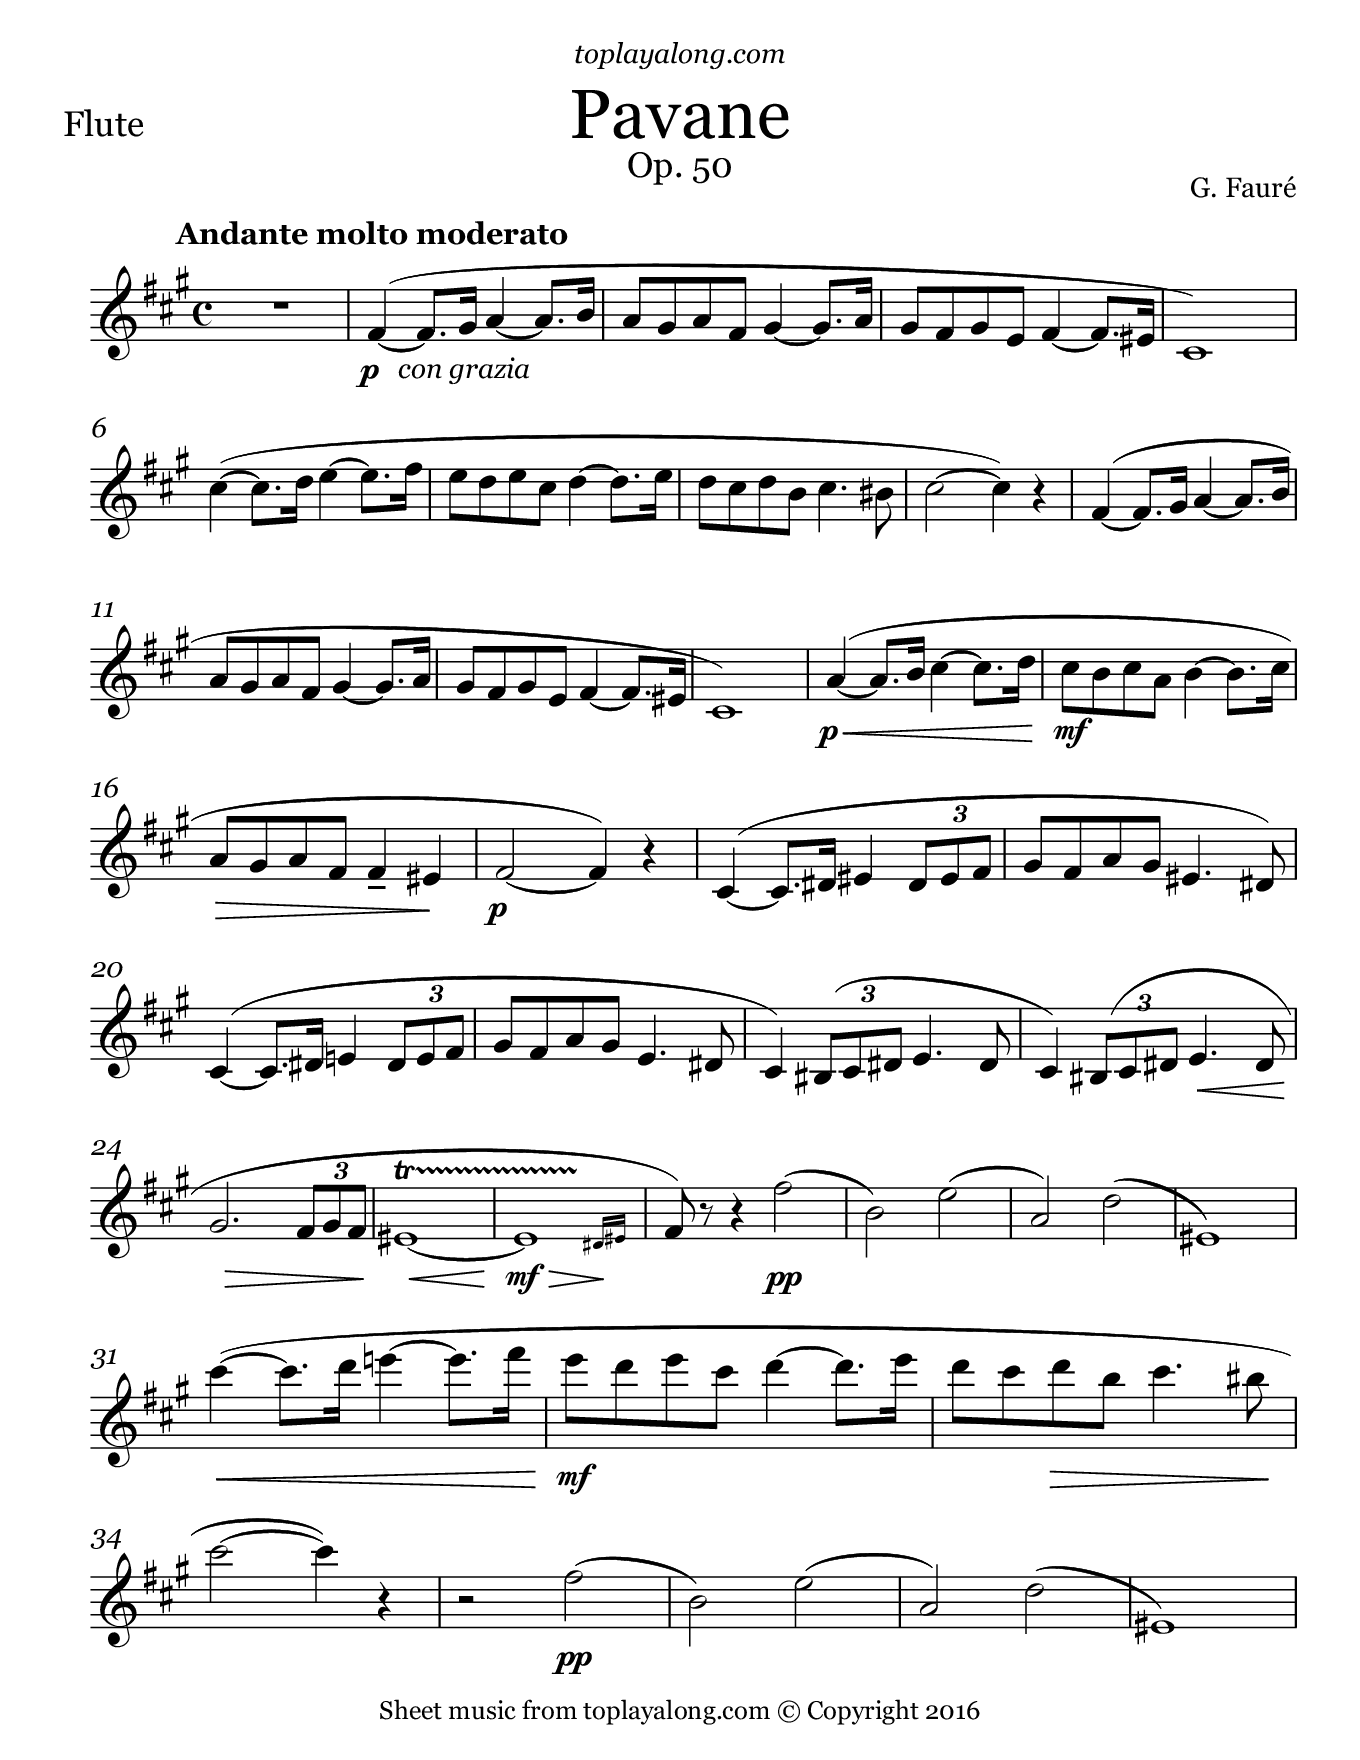 Pavane by Fauré. Sheet music for Flute, page 1.